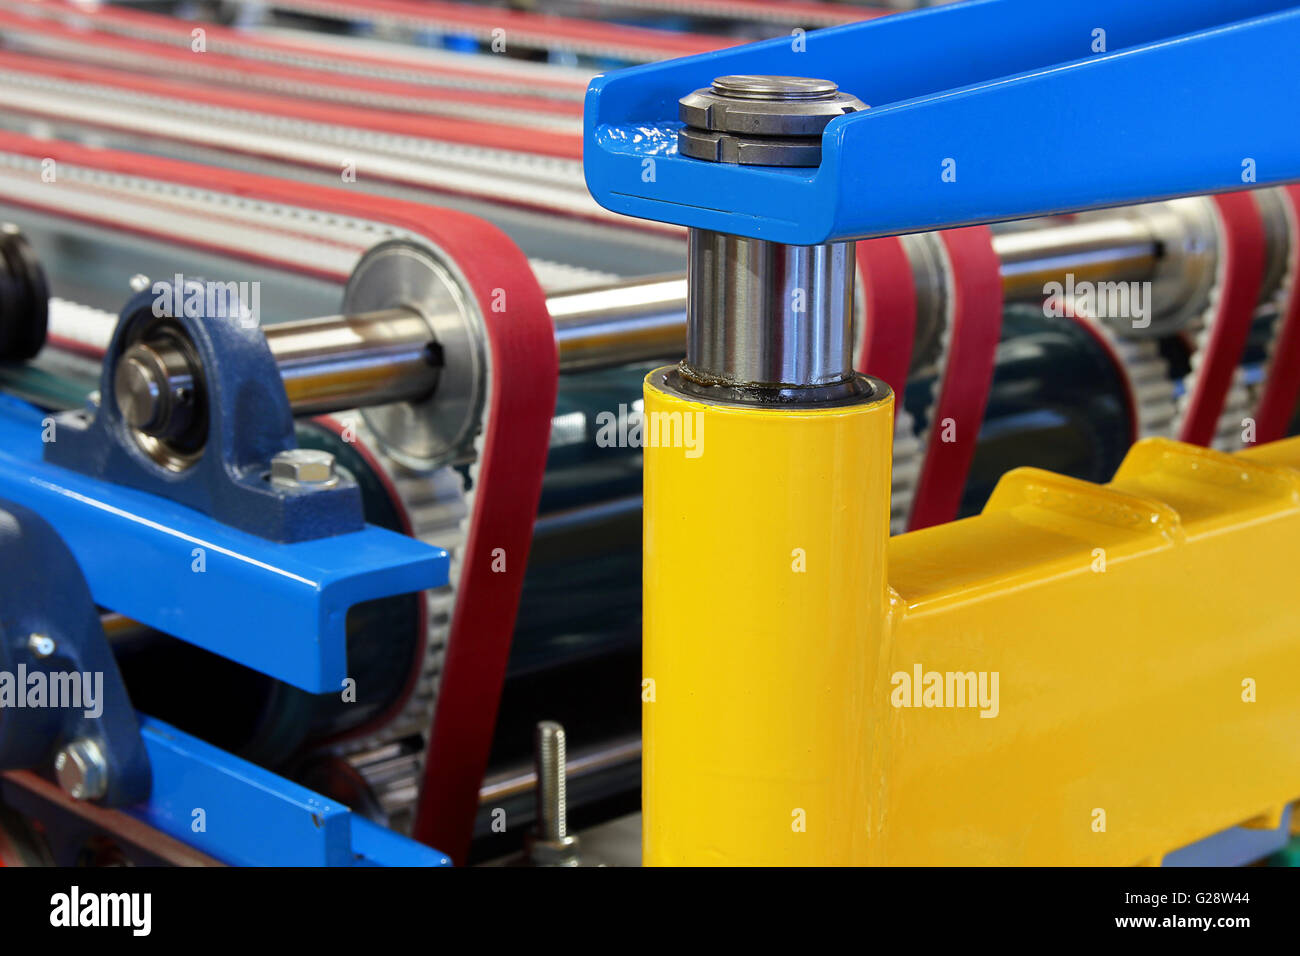 Detail of an equipment fitted with belts, pulleys and pistons - Stock Image